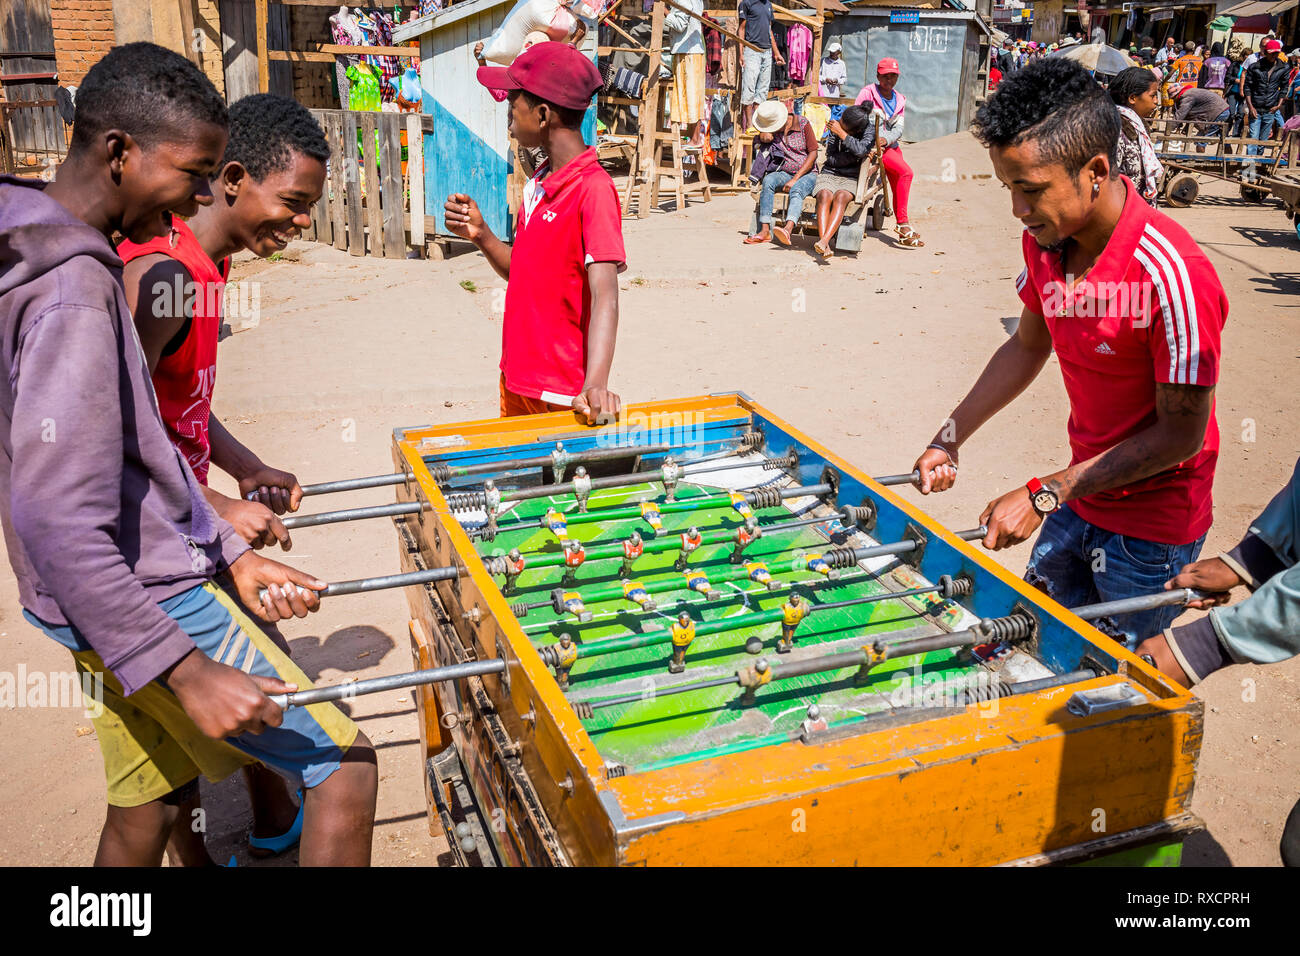 Playing table football, Ambohimahasoa city, Madagascar - Stock Image